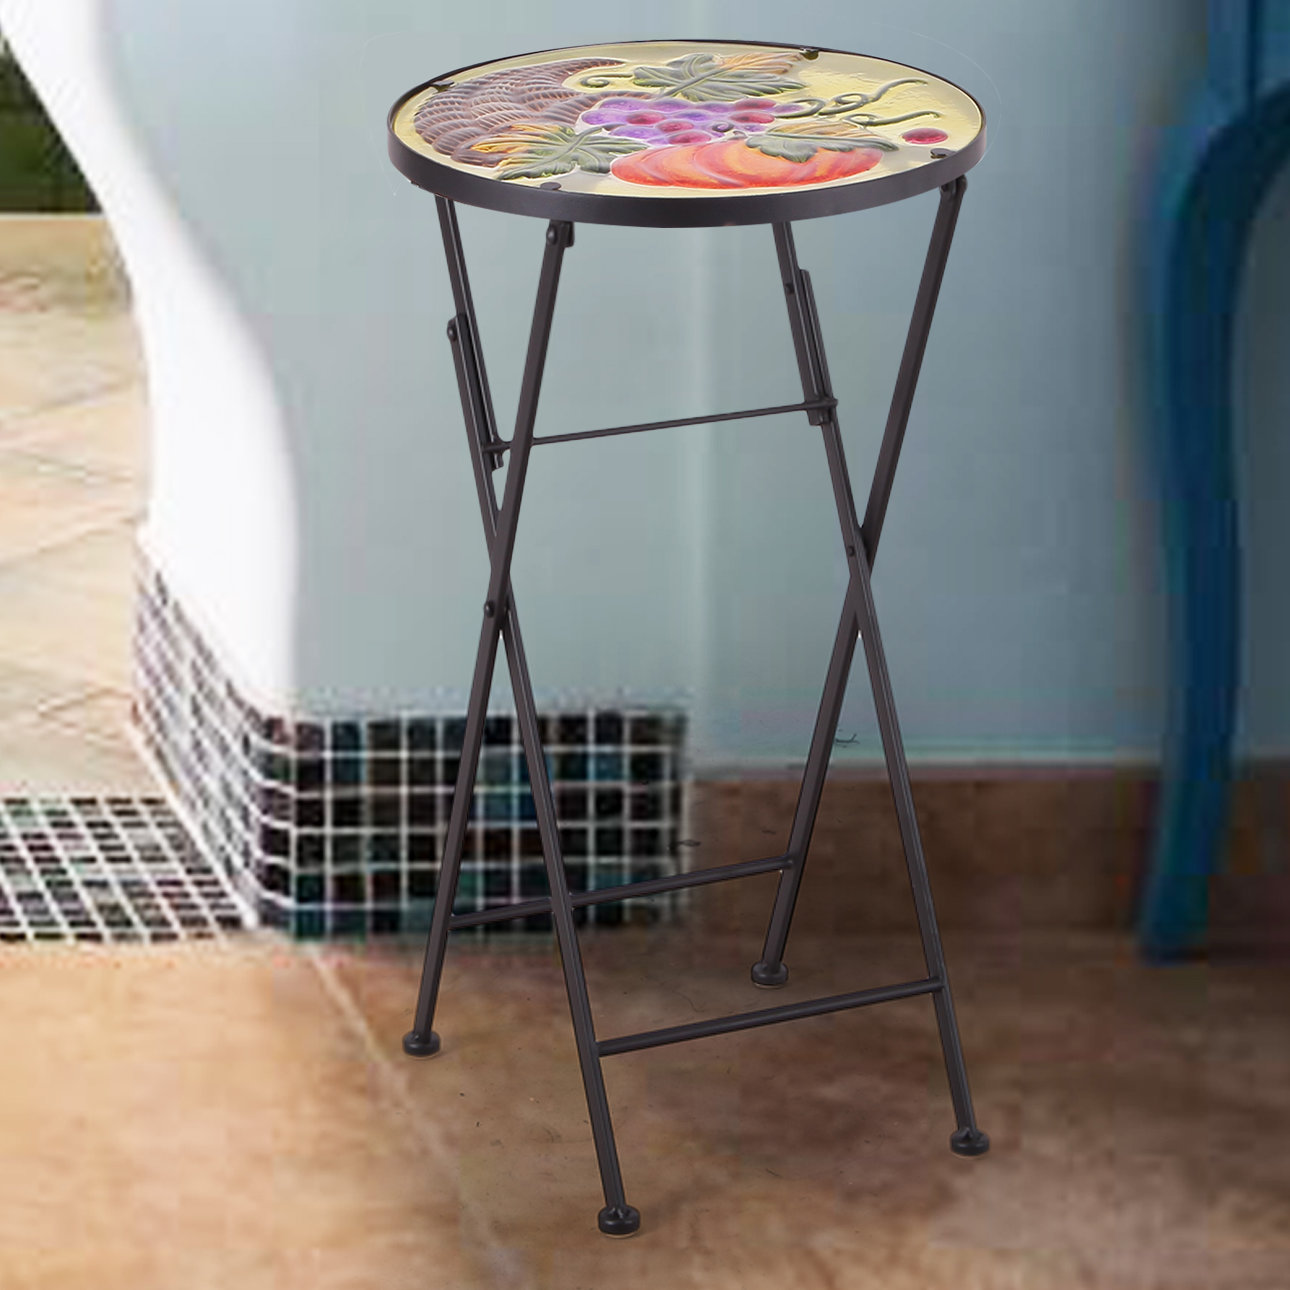 adecotrading end table patchen accent ikea childrens kitchen patio furniture clearance depot garden stool side west elm wood art cabinet ashley mattress mahogany bedside tables